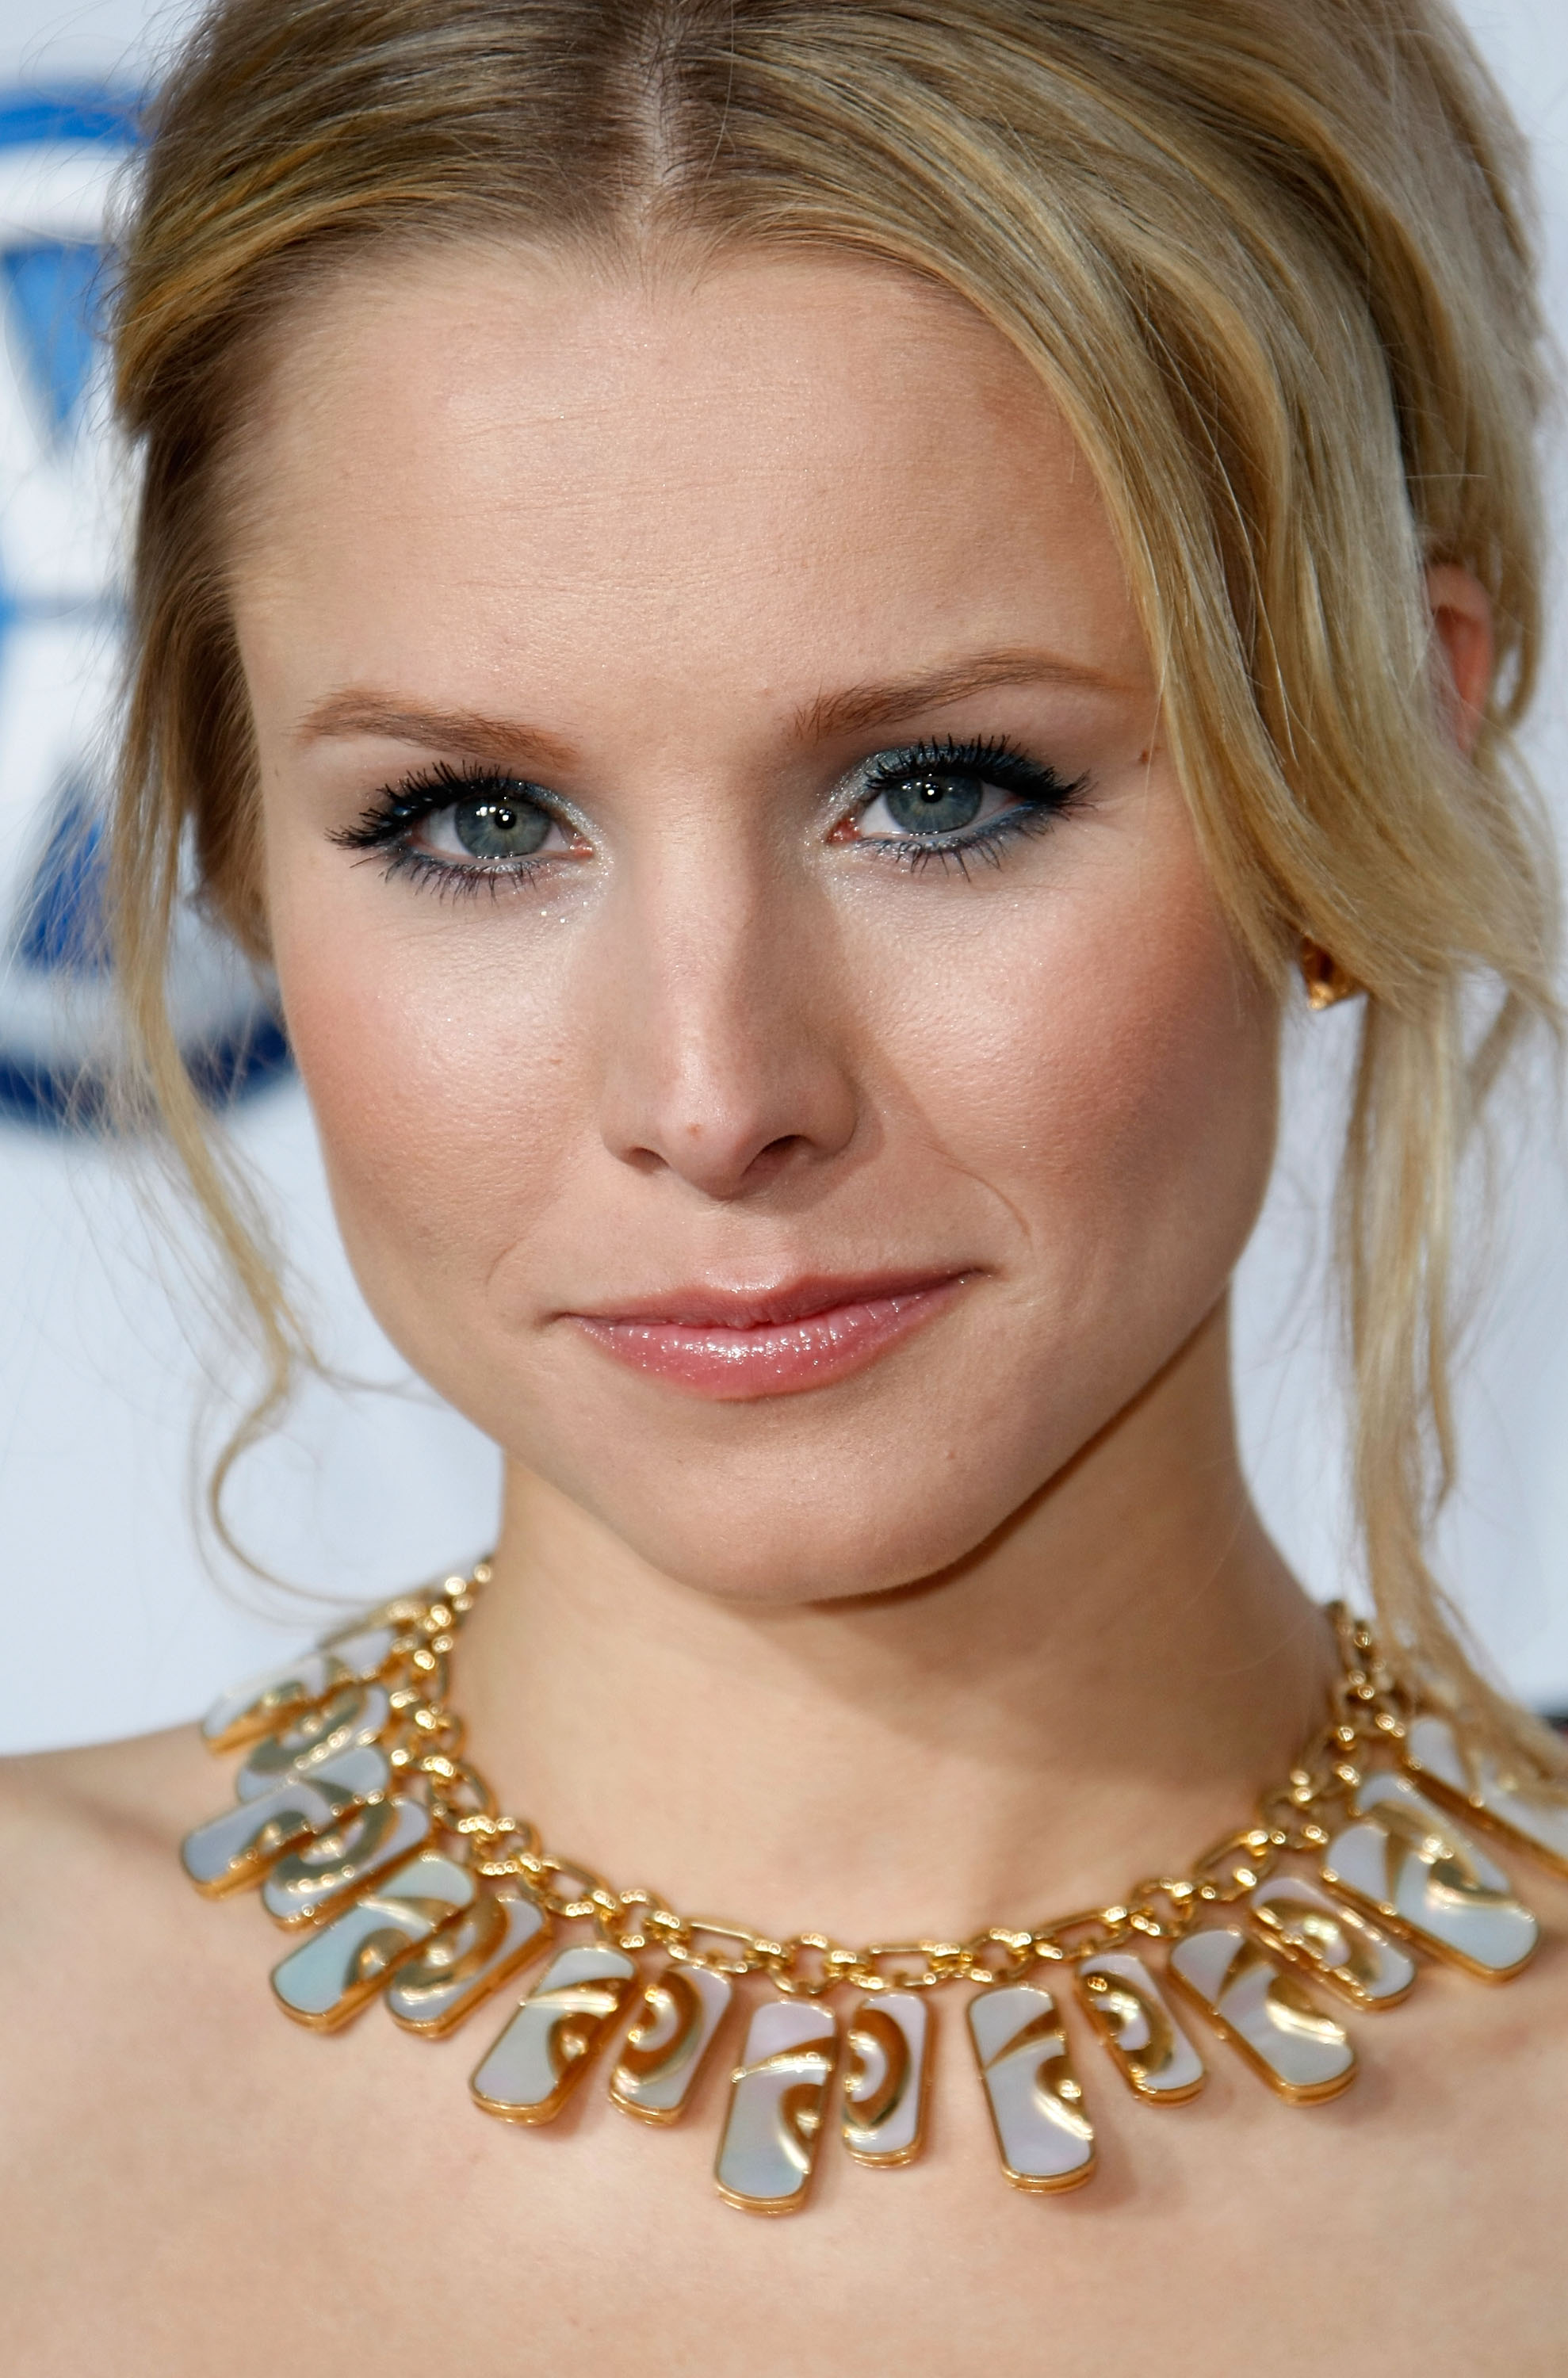 94991_Kristen_Bell-Forgetting_Sarah_Marshall_premiere_in_Hollywood_922_122_1195lo.jpg